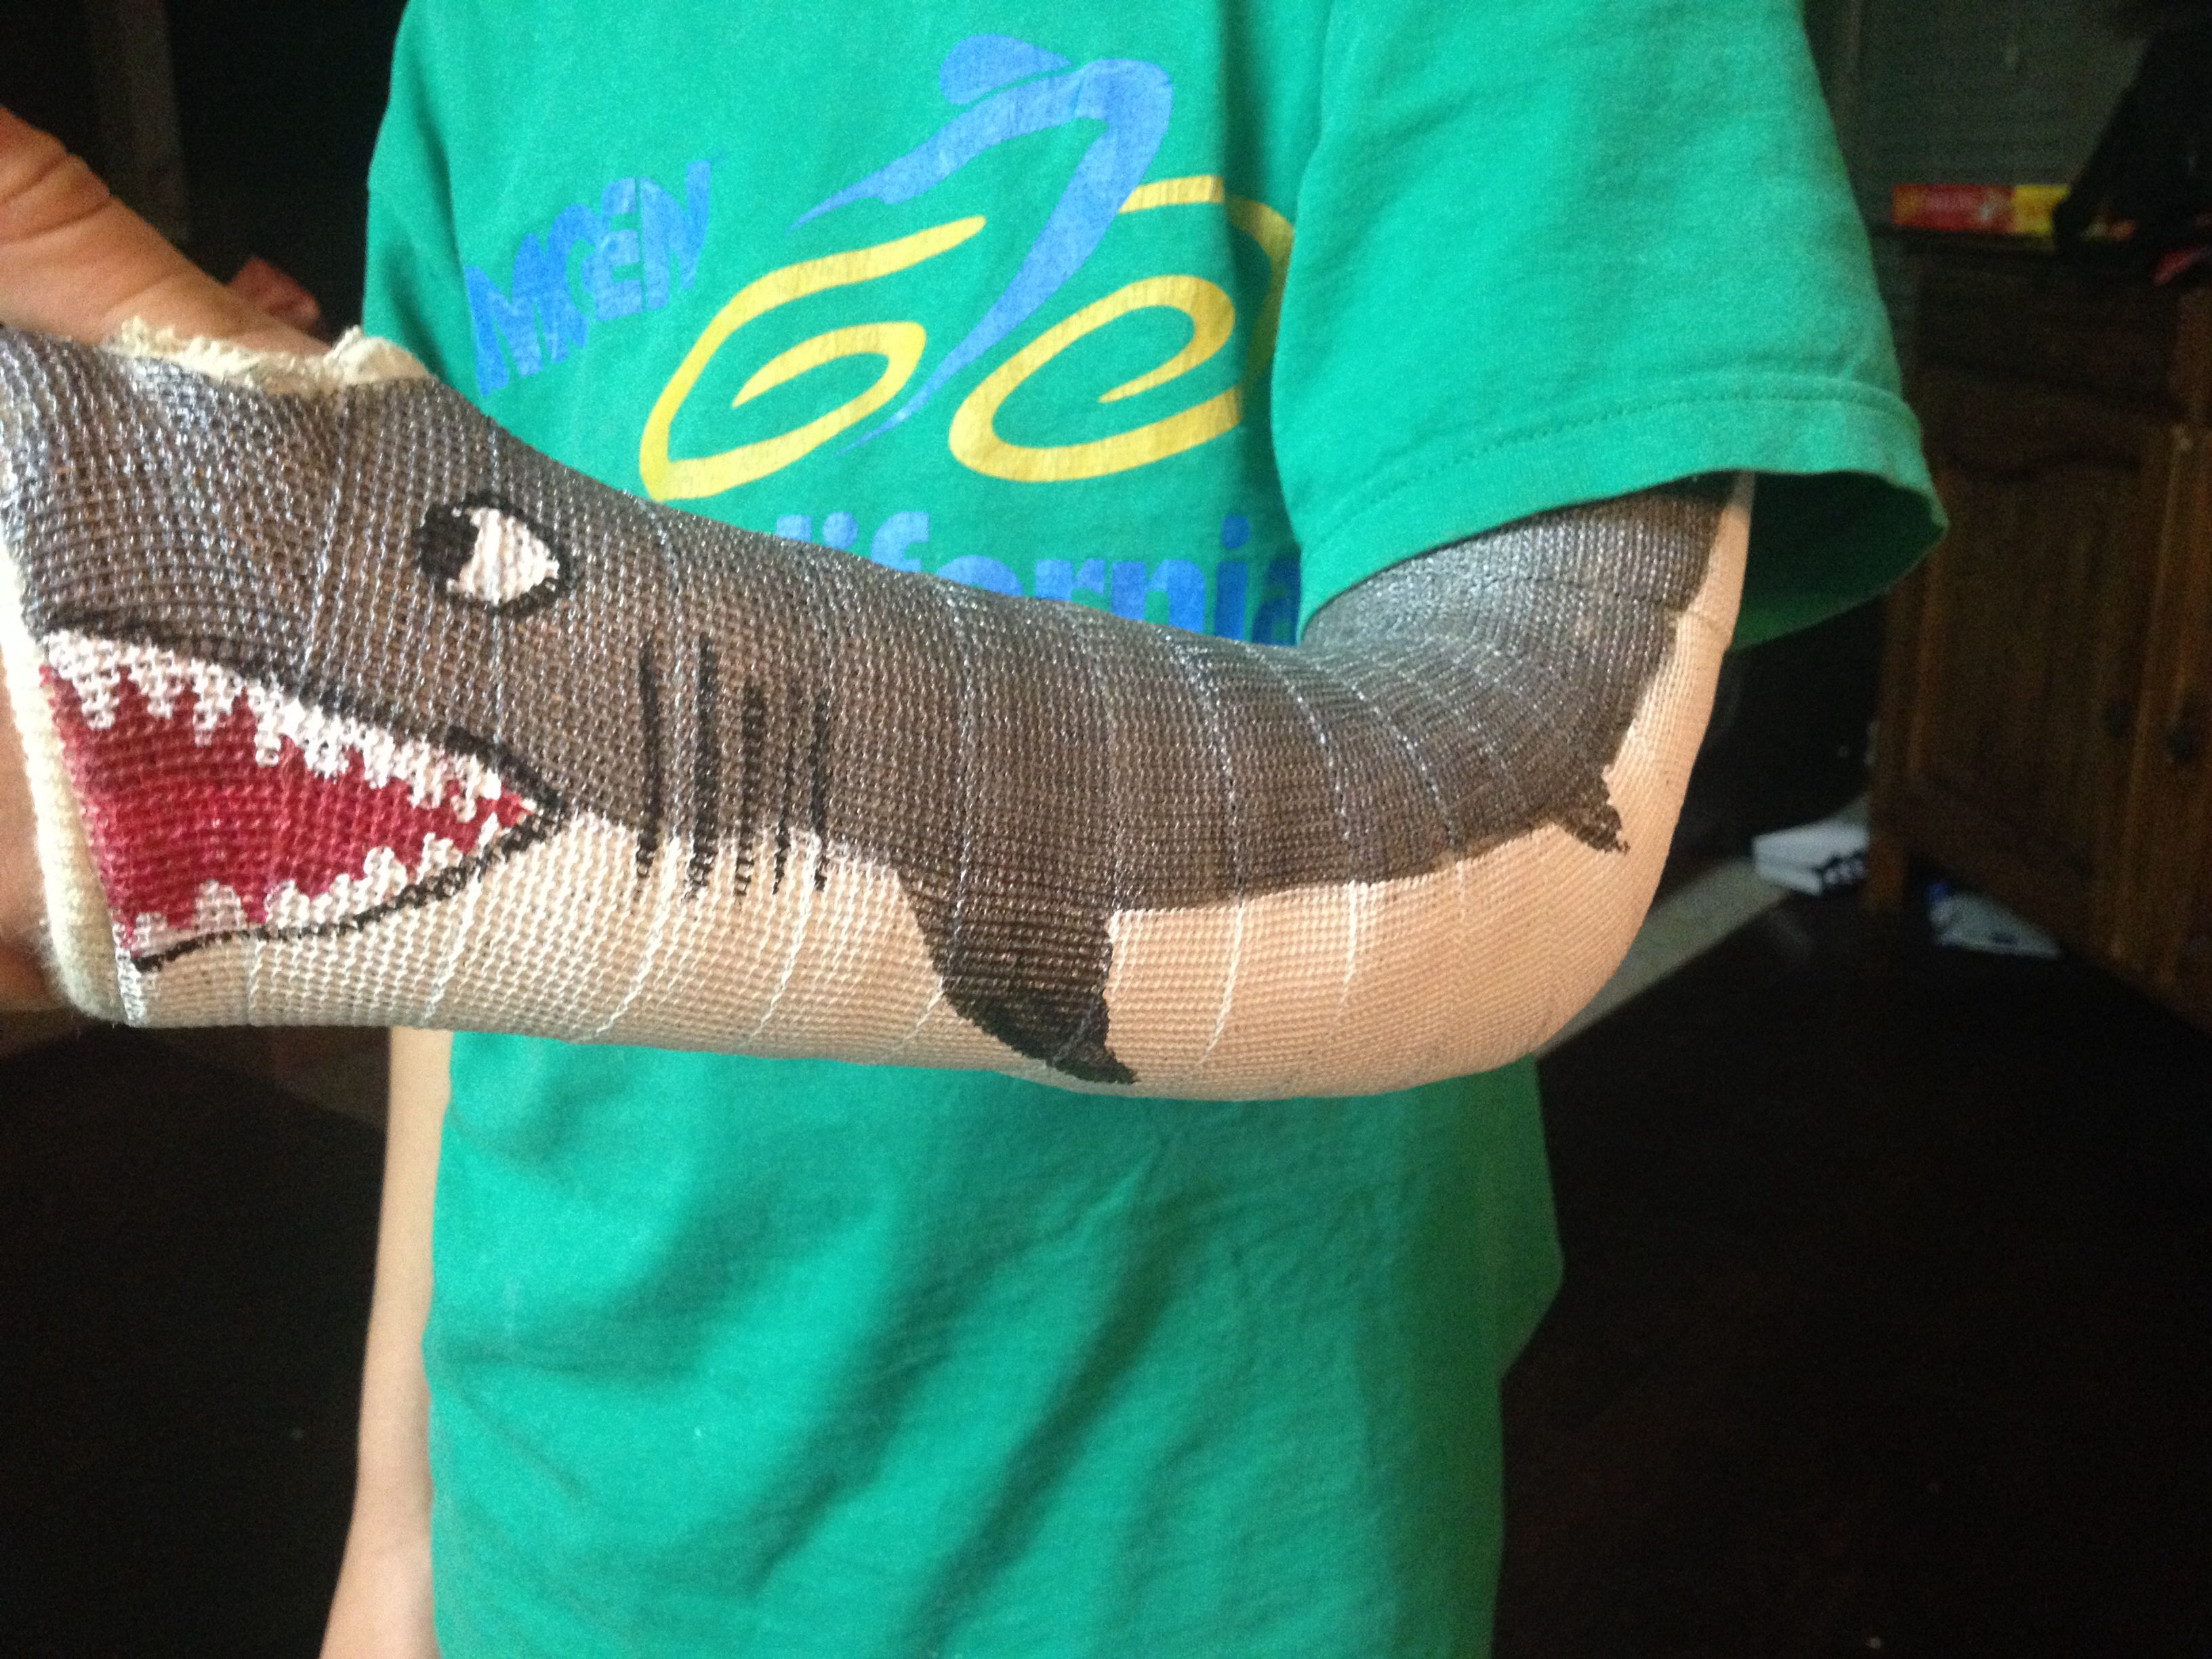 Colored cast - Painting A Great White Shark On My Son S Cast One Way To Make A Broken